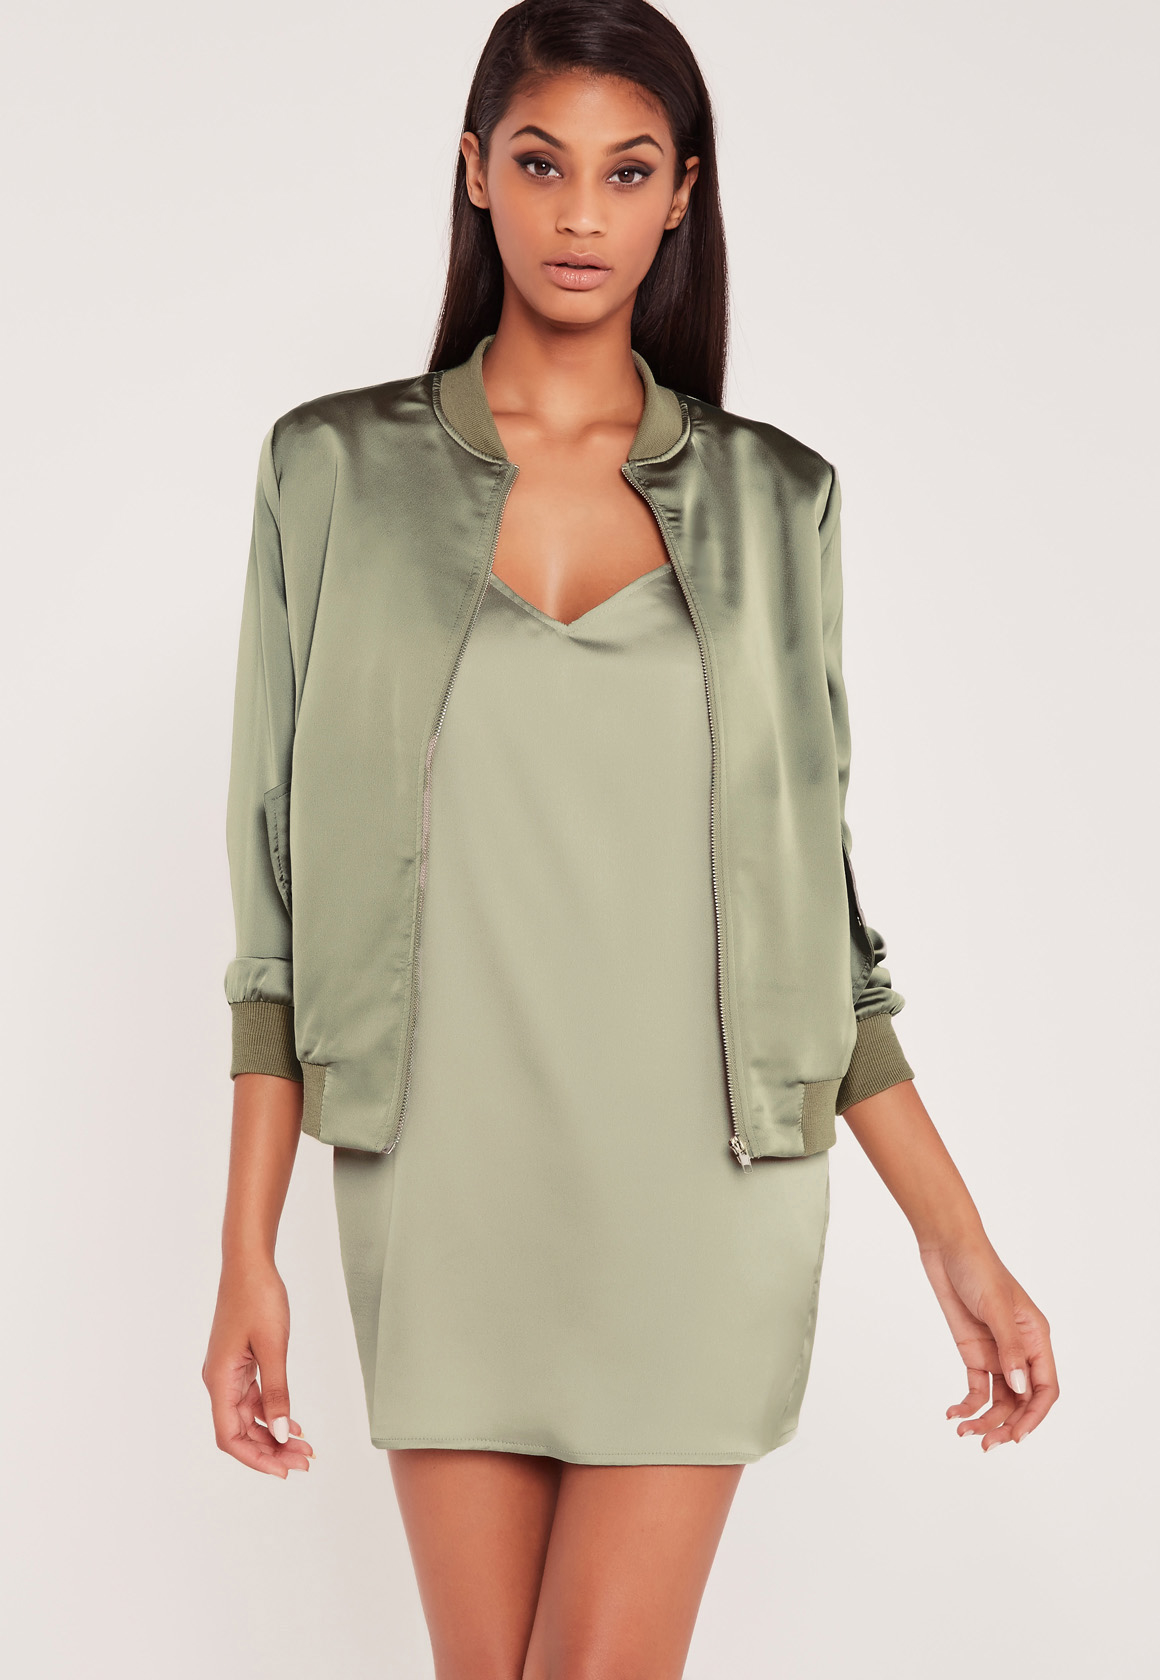 Carli Bybel Youtube Makeup: Missguided Carli Bybel Satin Bomber Jacket Green In Green